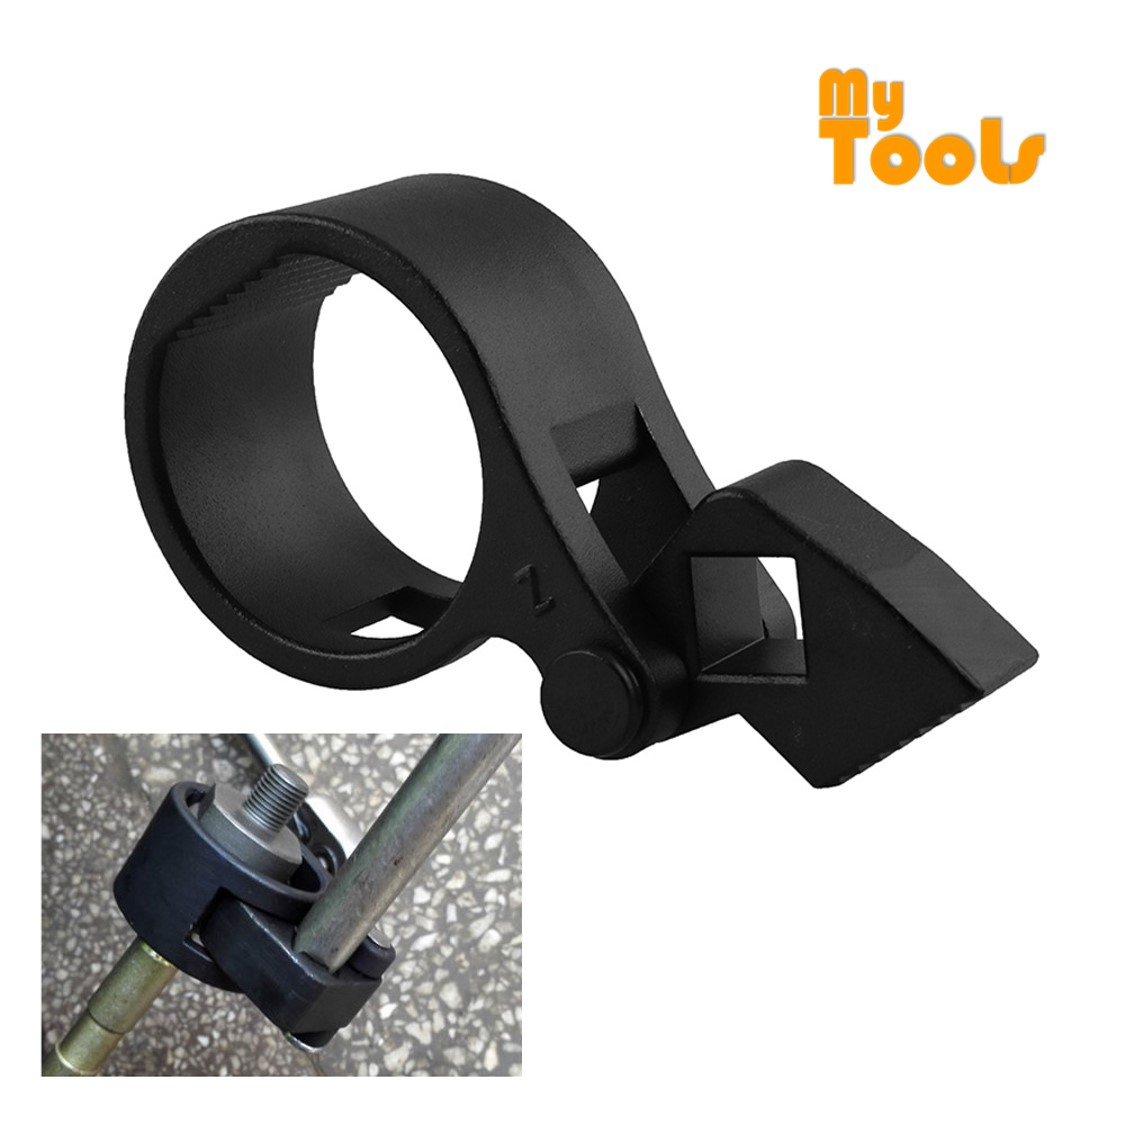 Mytools 27mm-42mm Universal Tie Rod End Remover Tie Rod Wrench Removal Tool for Car Truck